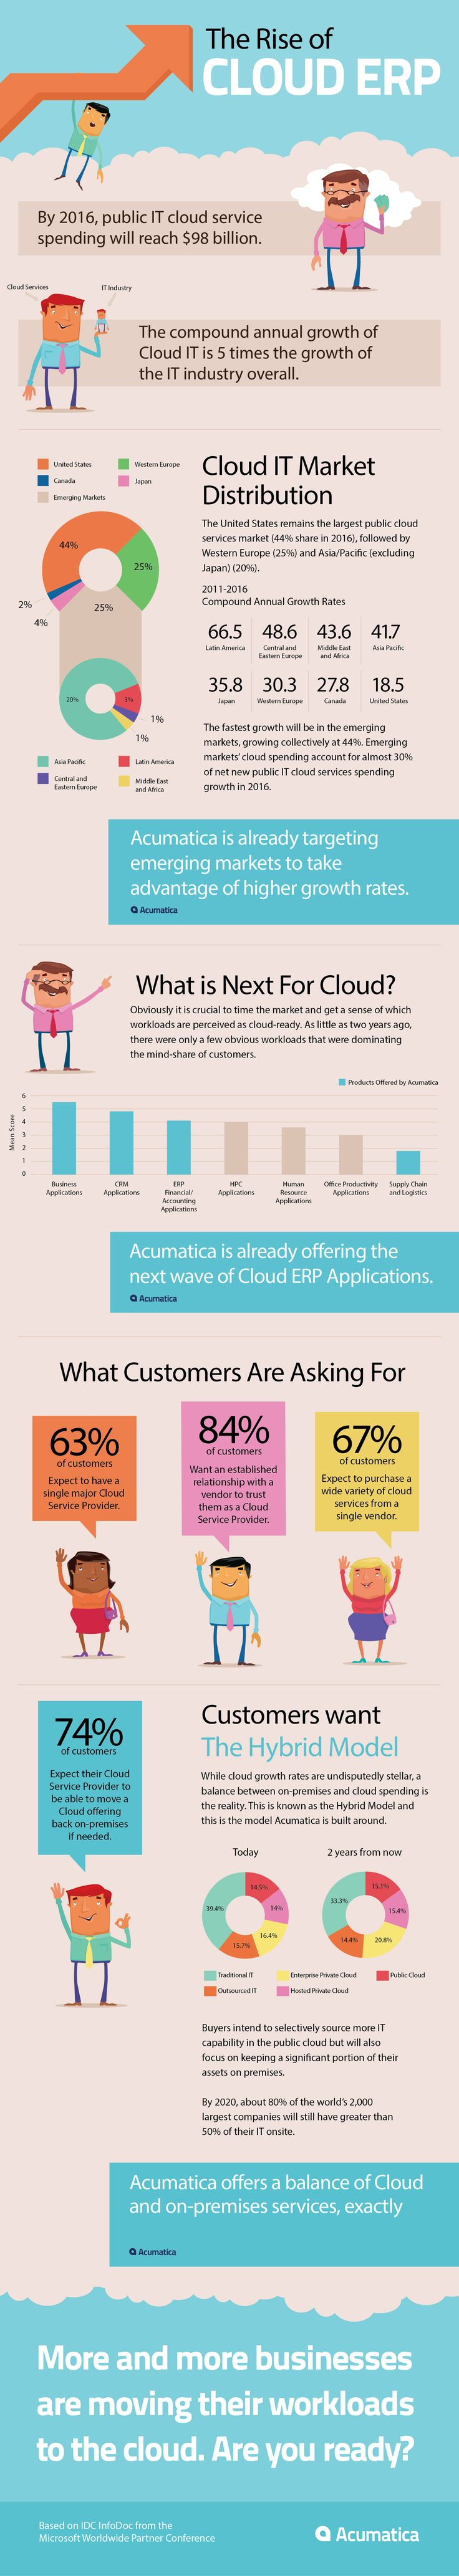 The Rise Of Cloud ERP (Infographic) http://chq.io/1usads